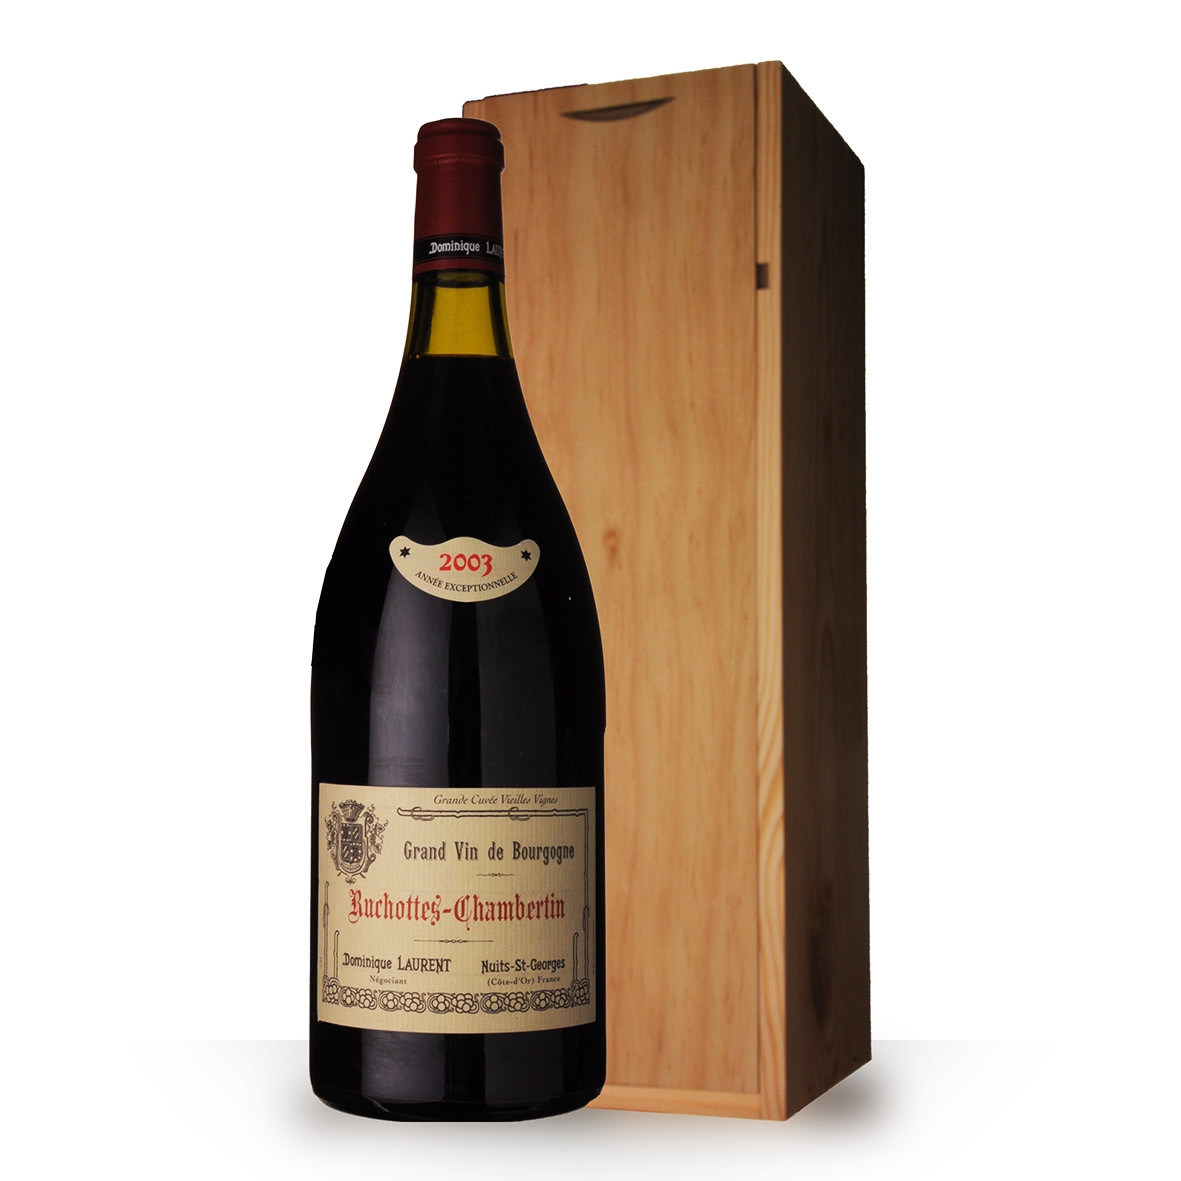 Dominique Laurent Ruchottes-Chambertin Blanc 2003 150cl www.odyssee-vins.com